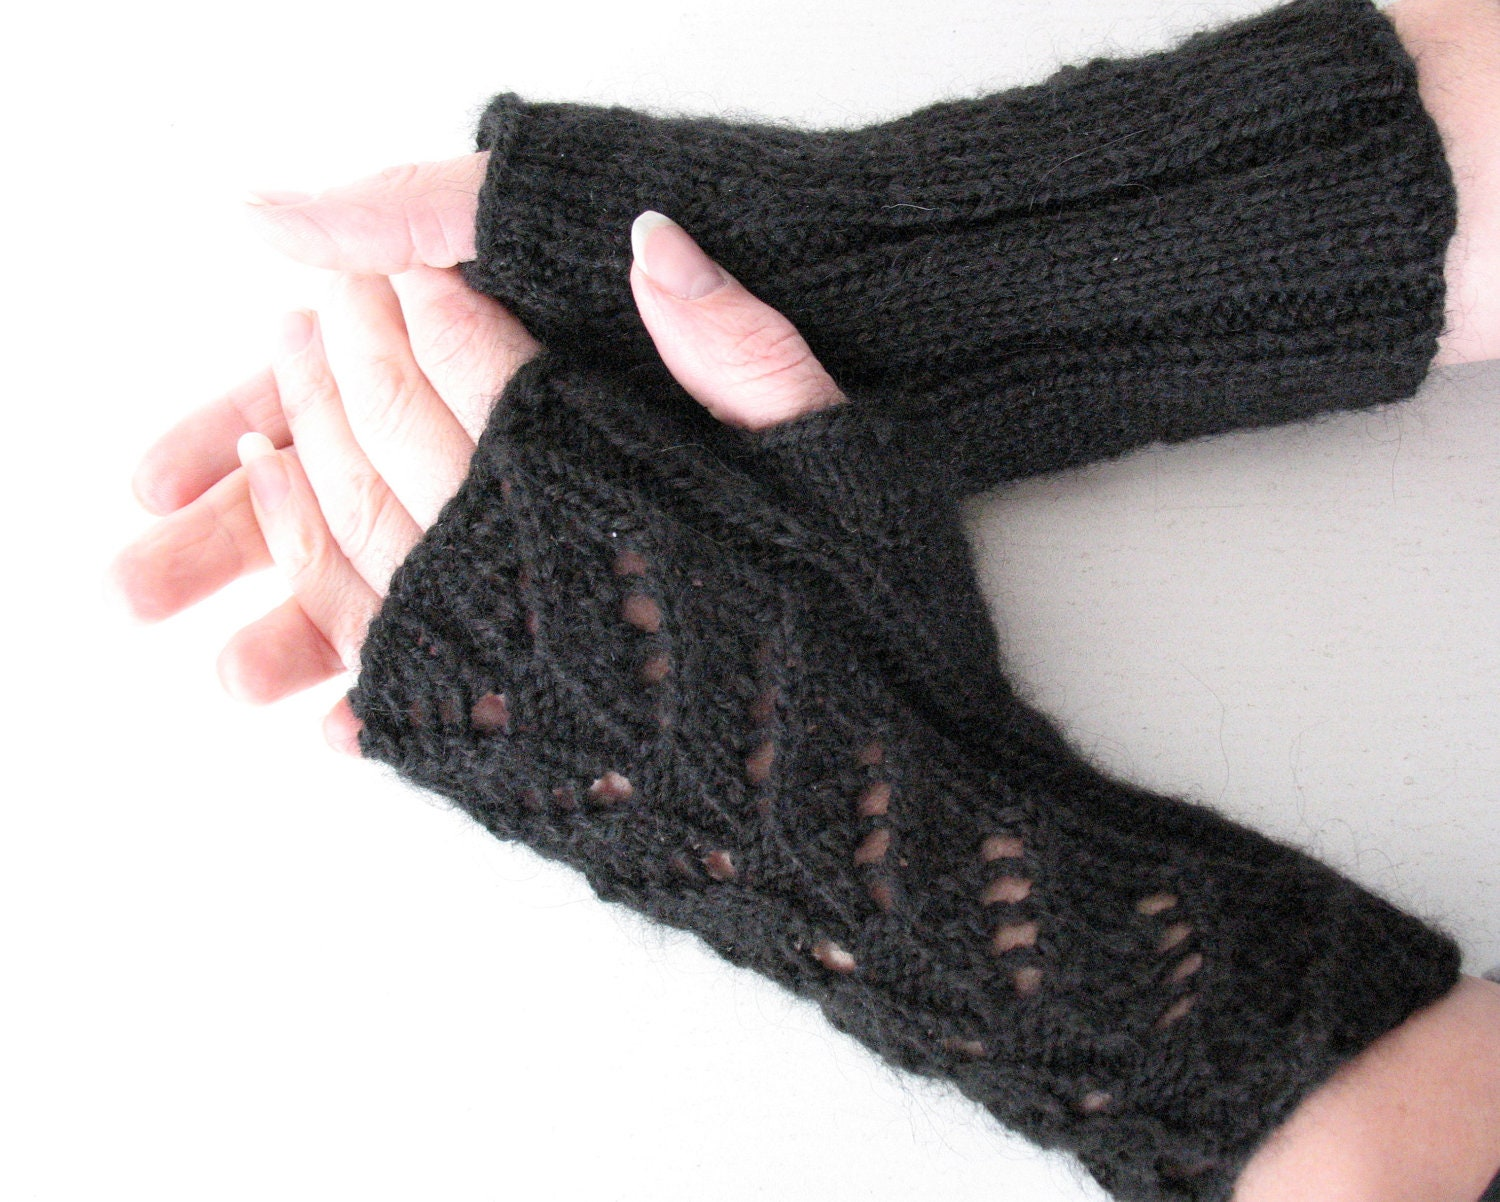 Knit Fingerless Gloves Arm Warmers Black 8 mittens by Initasworks